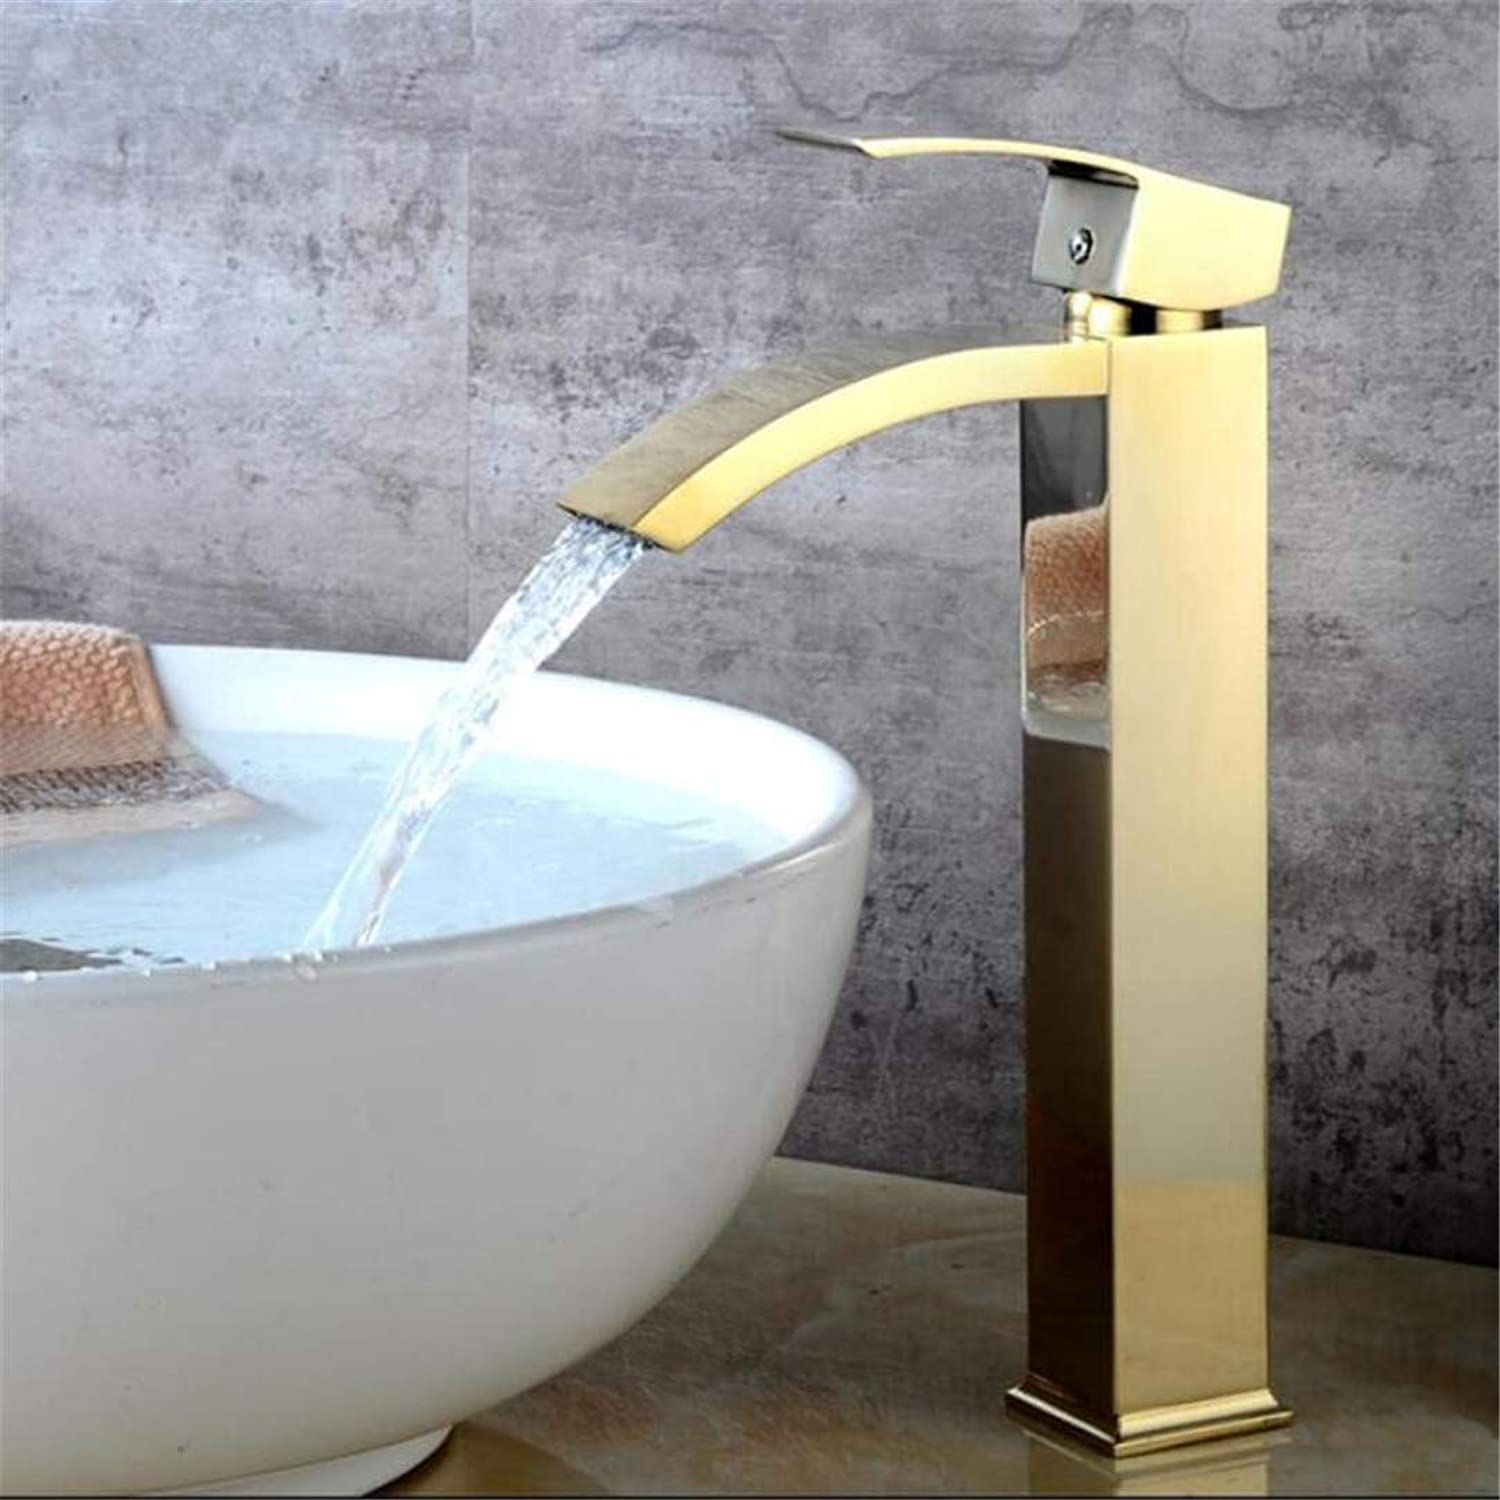 Bathroom Faucet Bathroom Basin Mixer Tap with Hot and Cold Water Crane